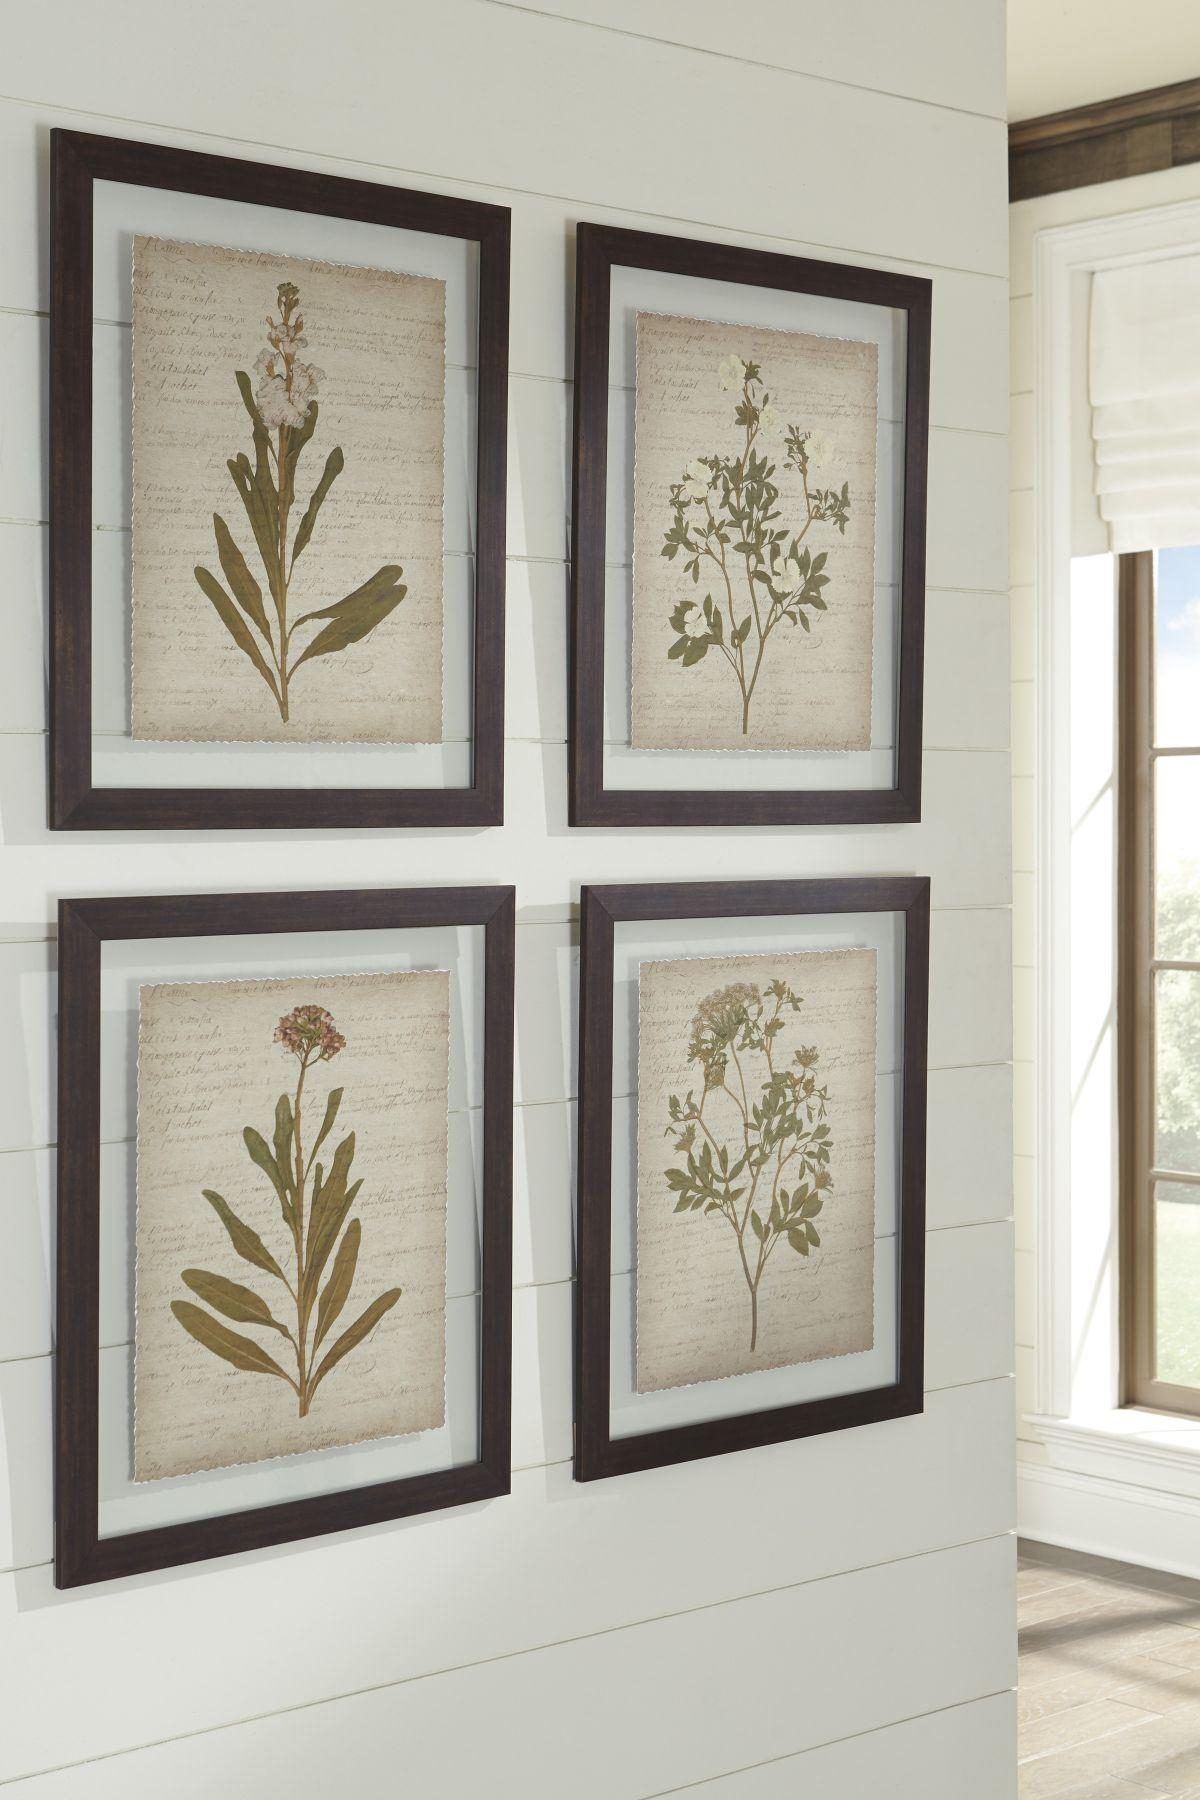 Dyani 4 Piece Wall Art Set Intended For 4 Piece Wall Art Sets (Image 8 of 20)